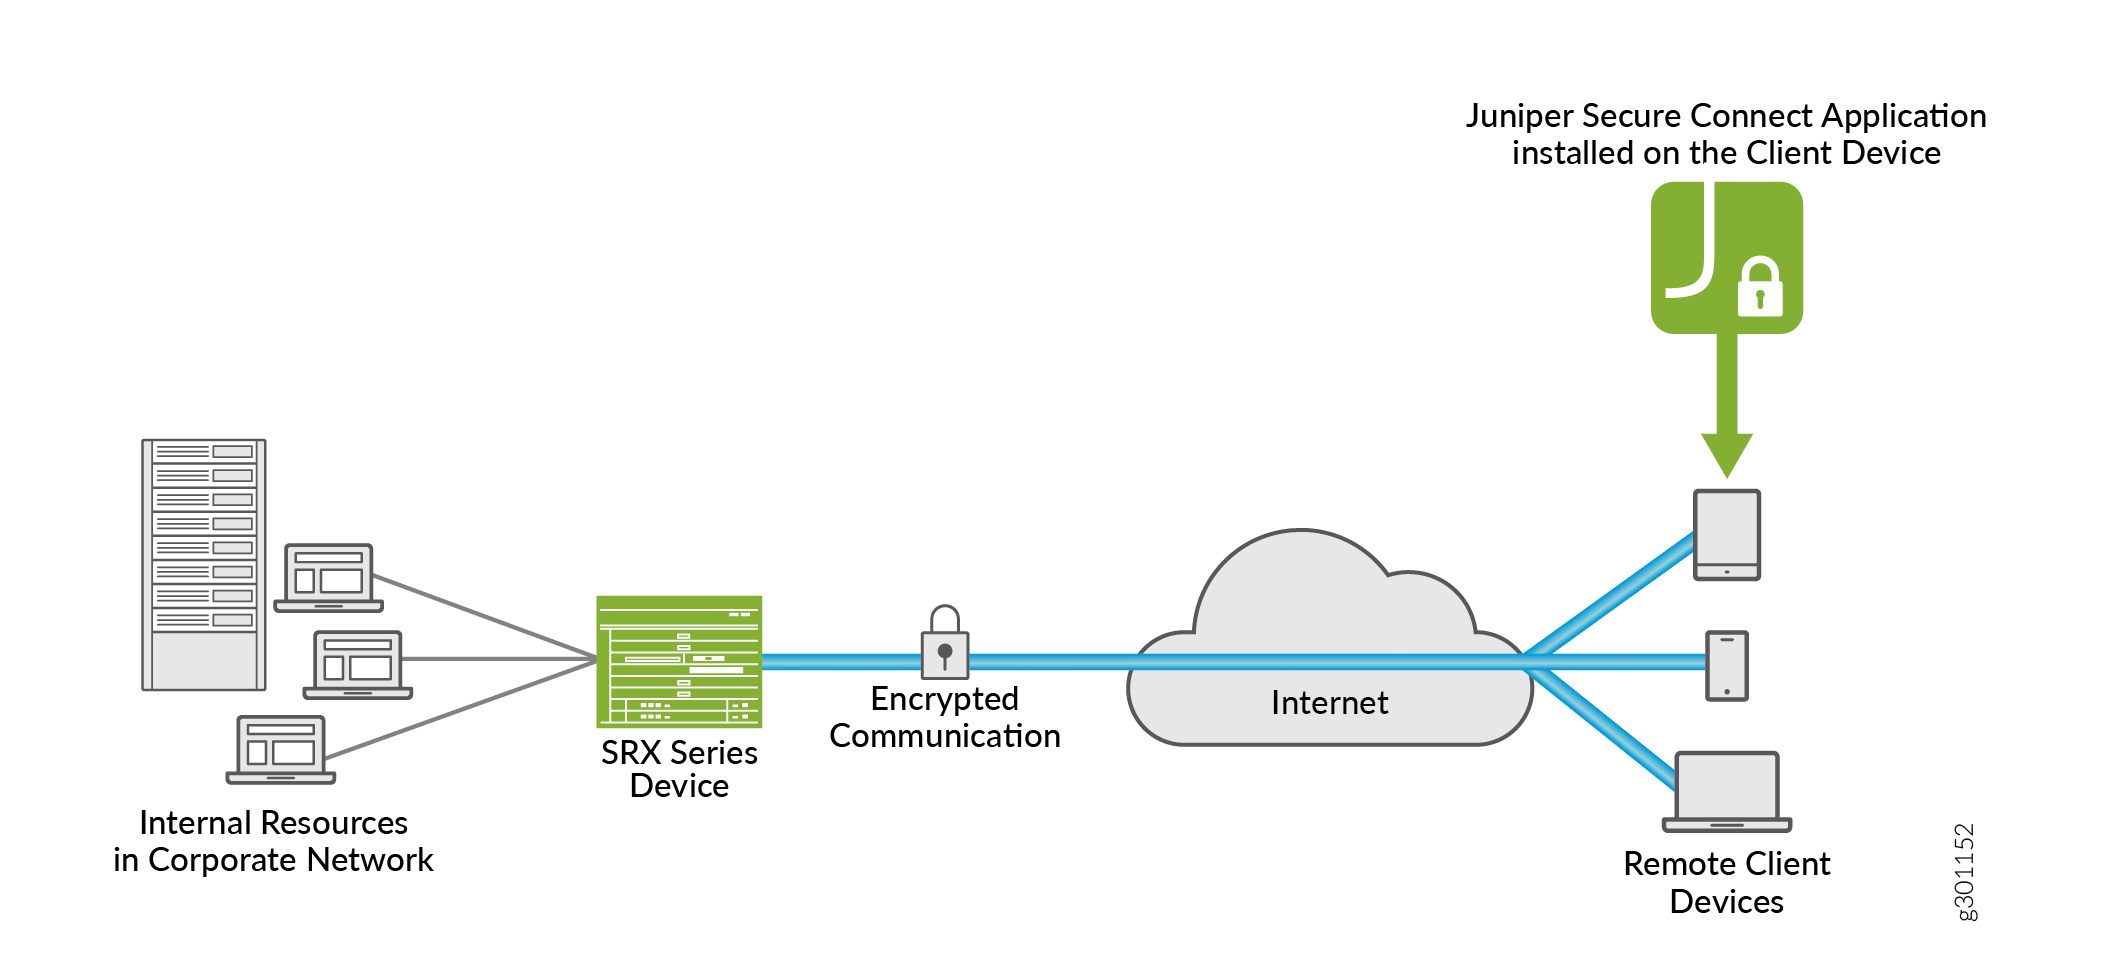 Juniper Secure Connect Remote Access Solution